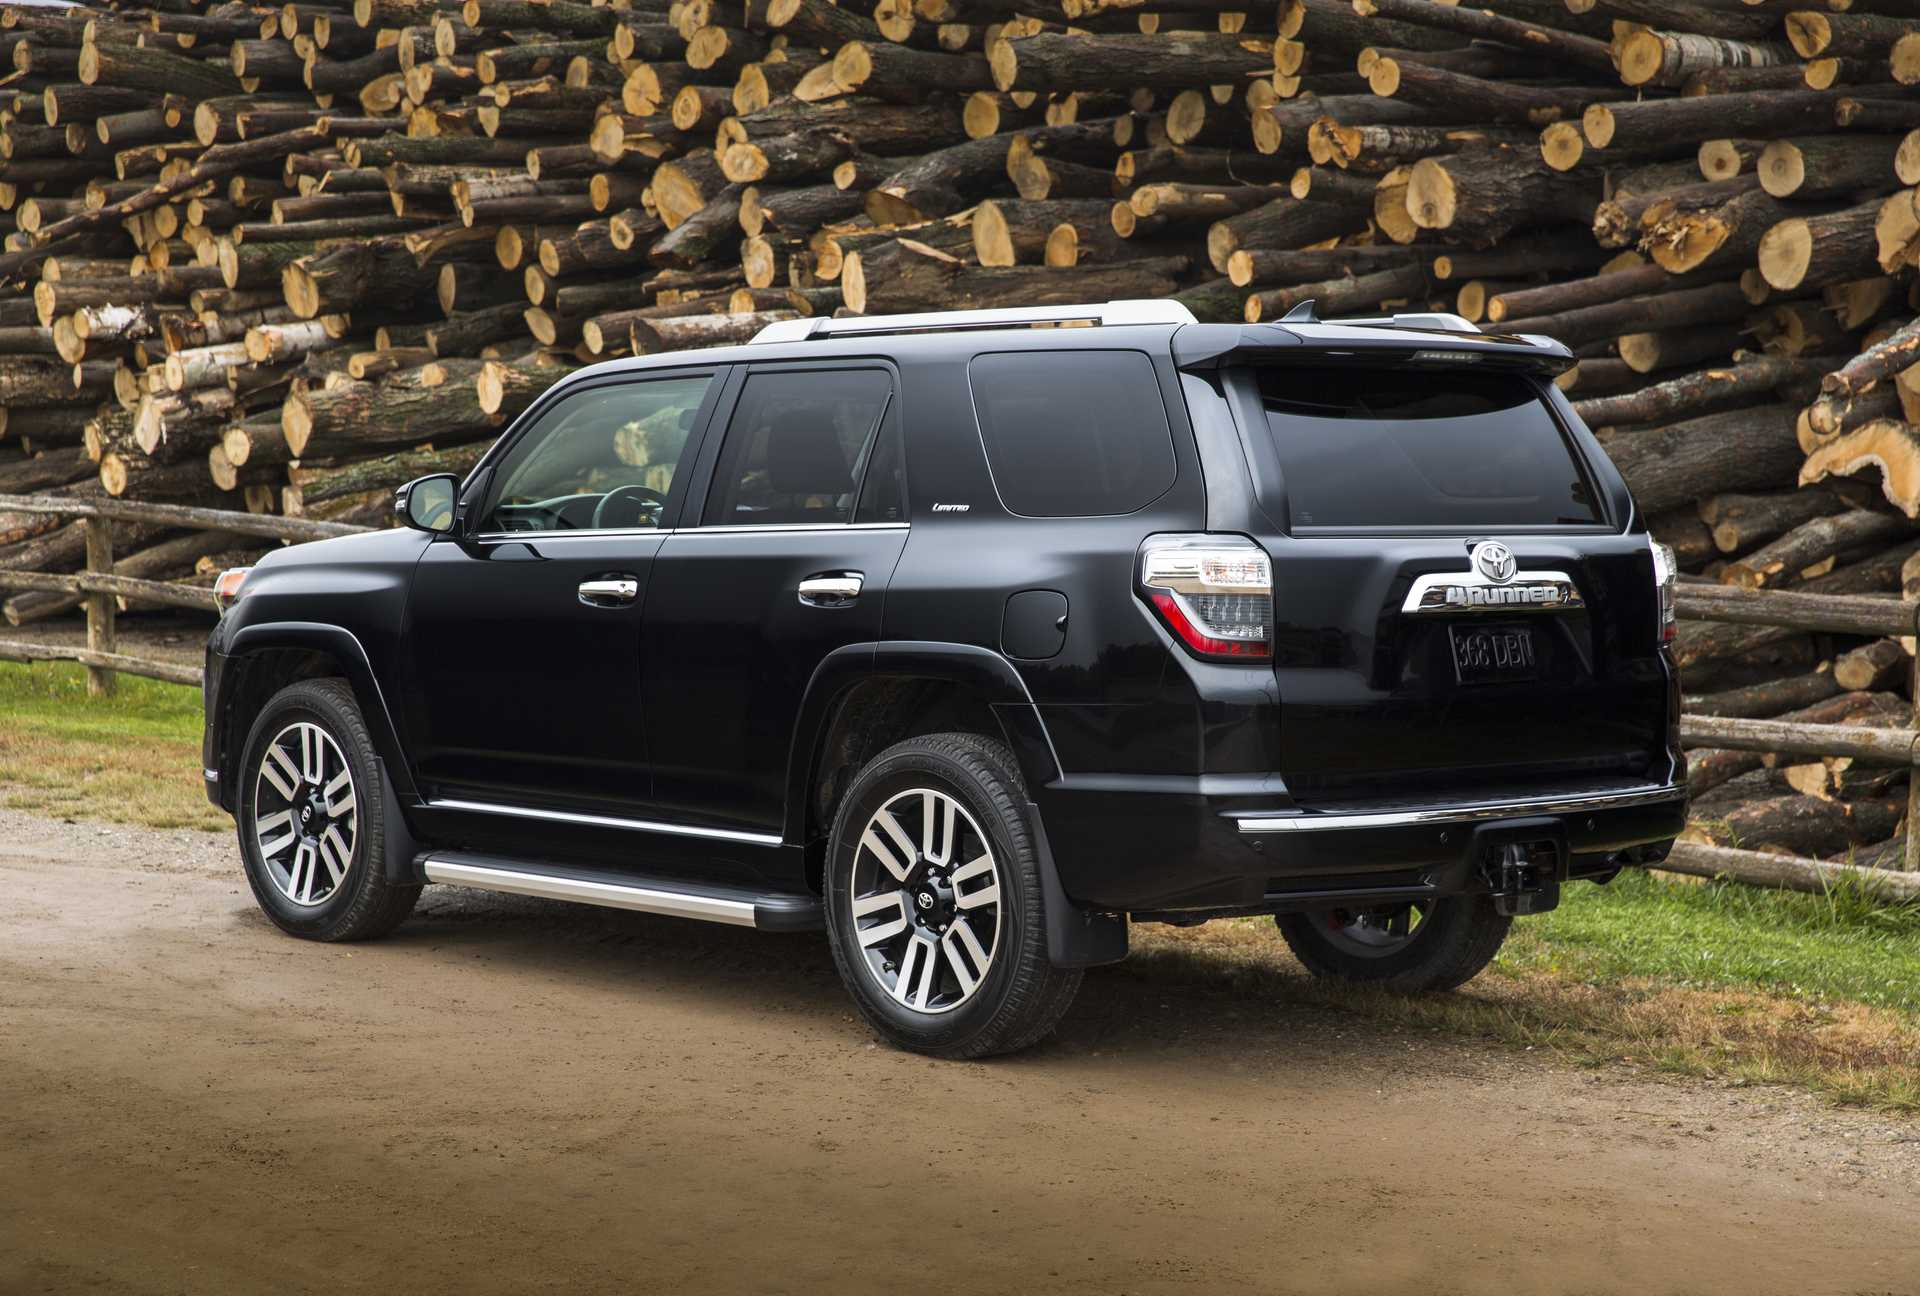 Toyota 4Runner 4.0 V6 Automatic, 270hp, 2014